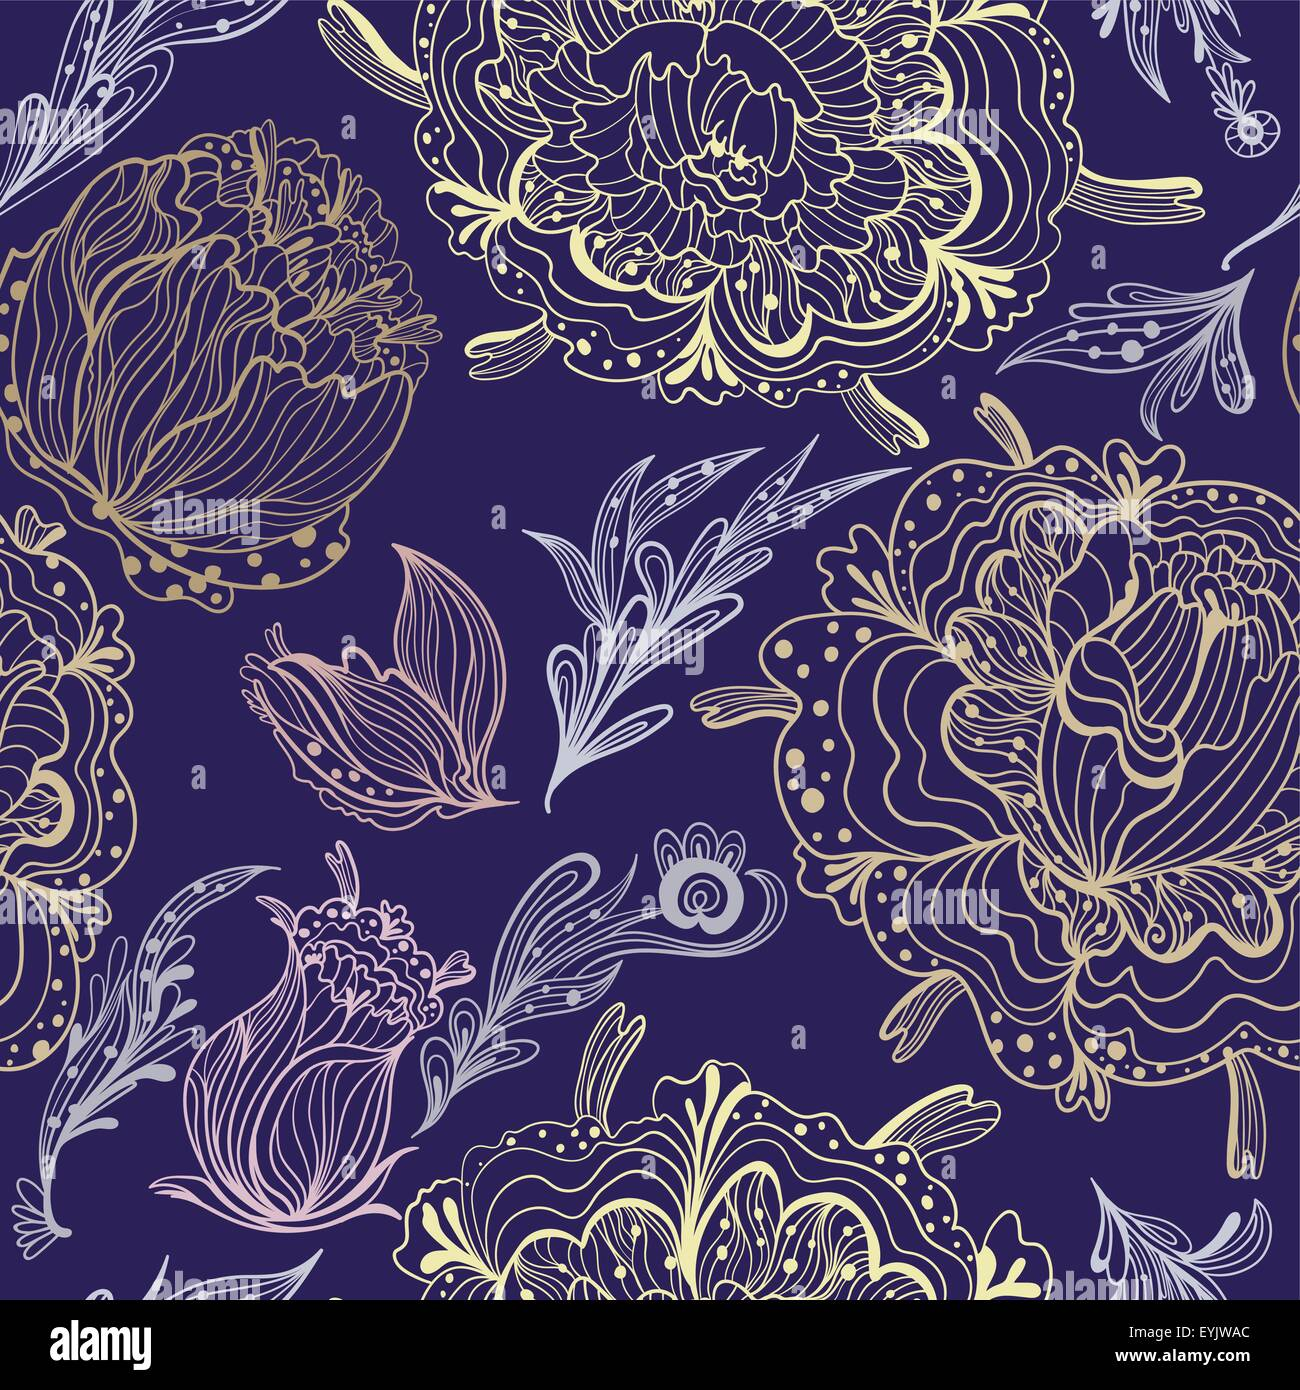 Expensive Print With Pastel Colored Flowers In Outline Technique On Dark Purple Background Modern And Romantic Style